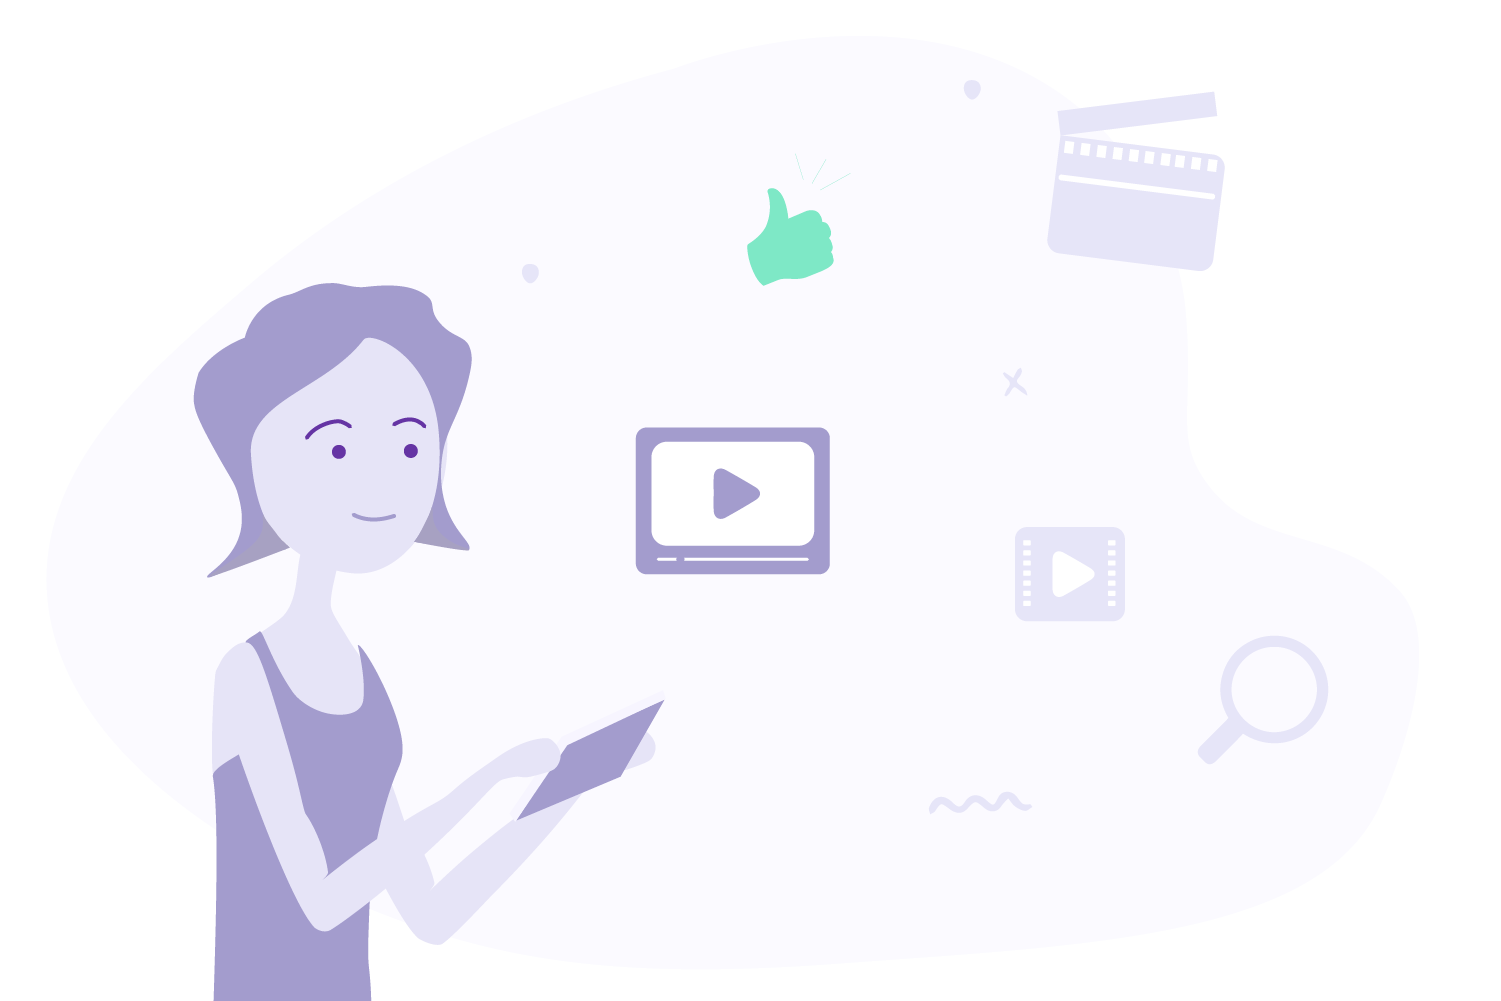 chatbot for entertainment industry - GetJenny